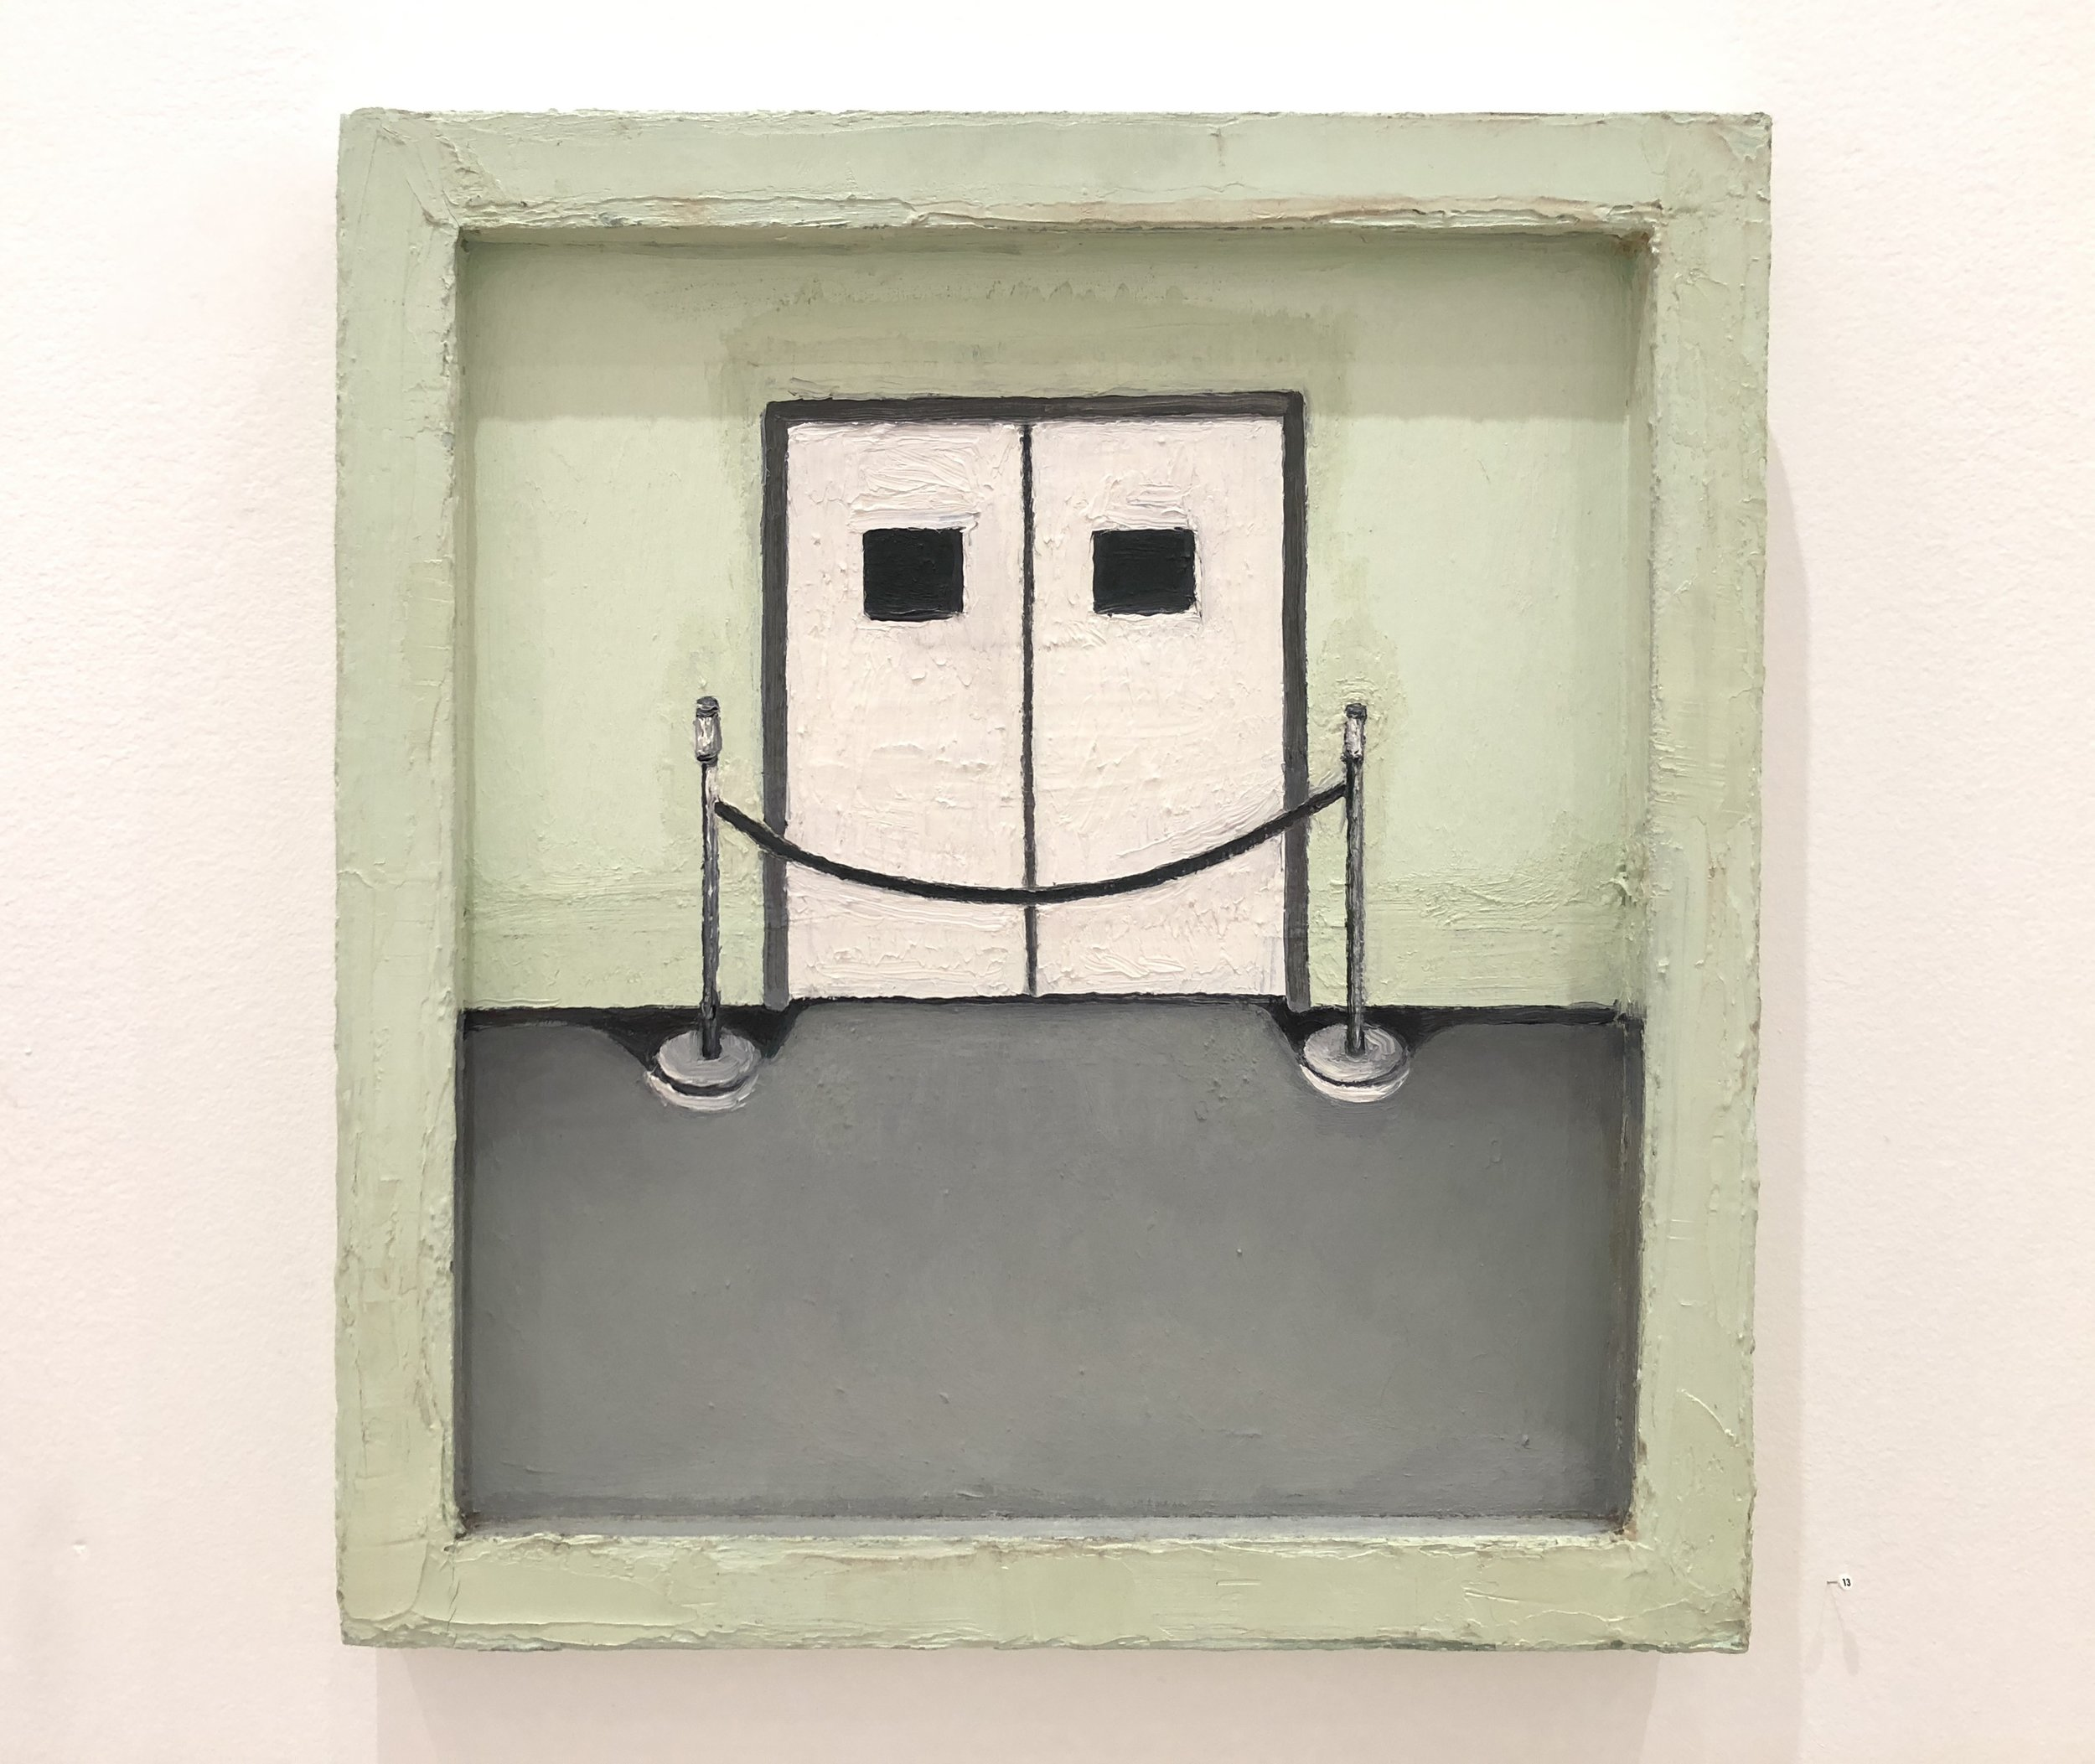 """Lori Taschler, No Exit  , 2002, 19"""" x 17.5"""", Oil on board in painted wood frame"""